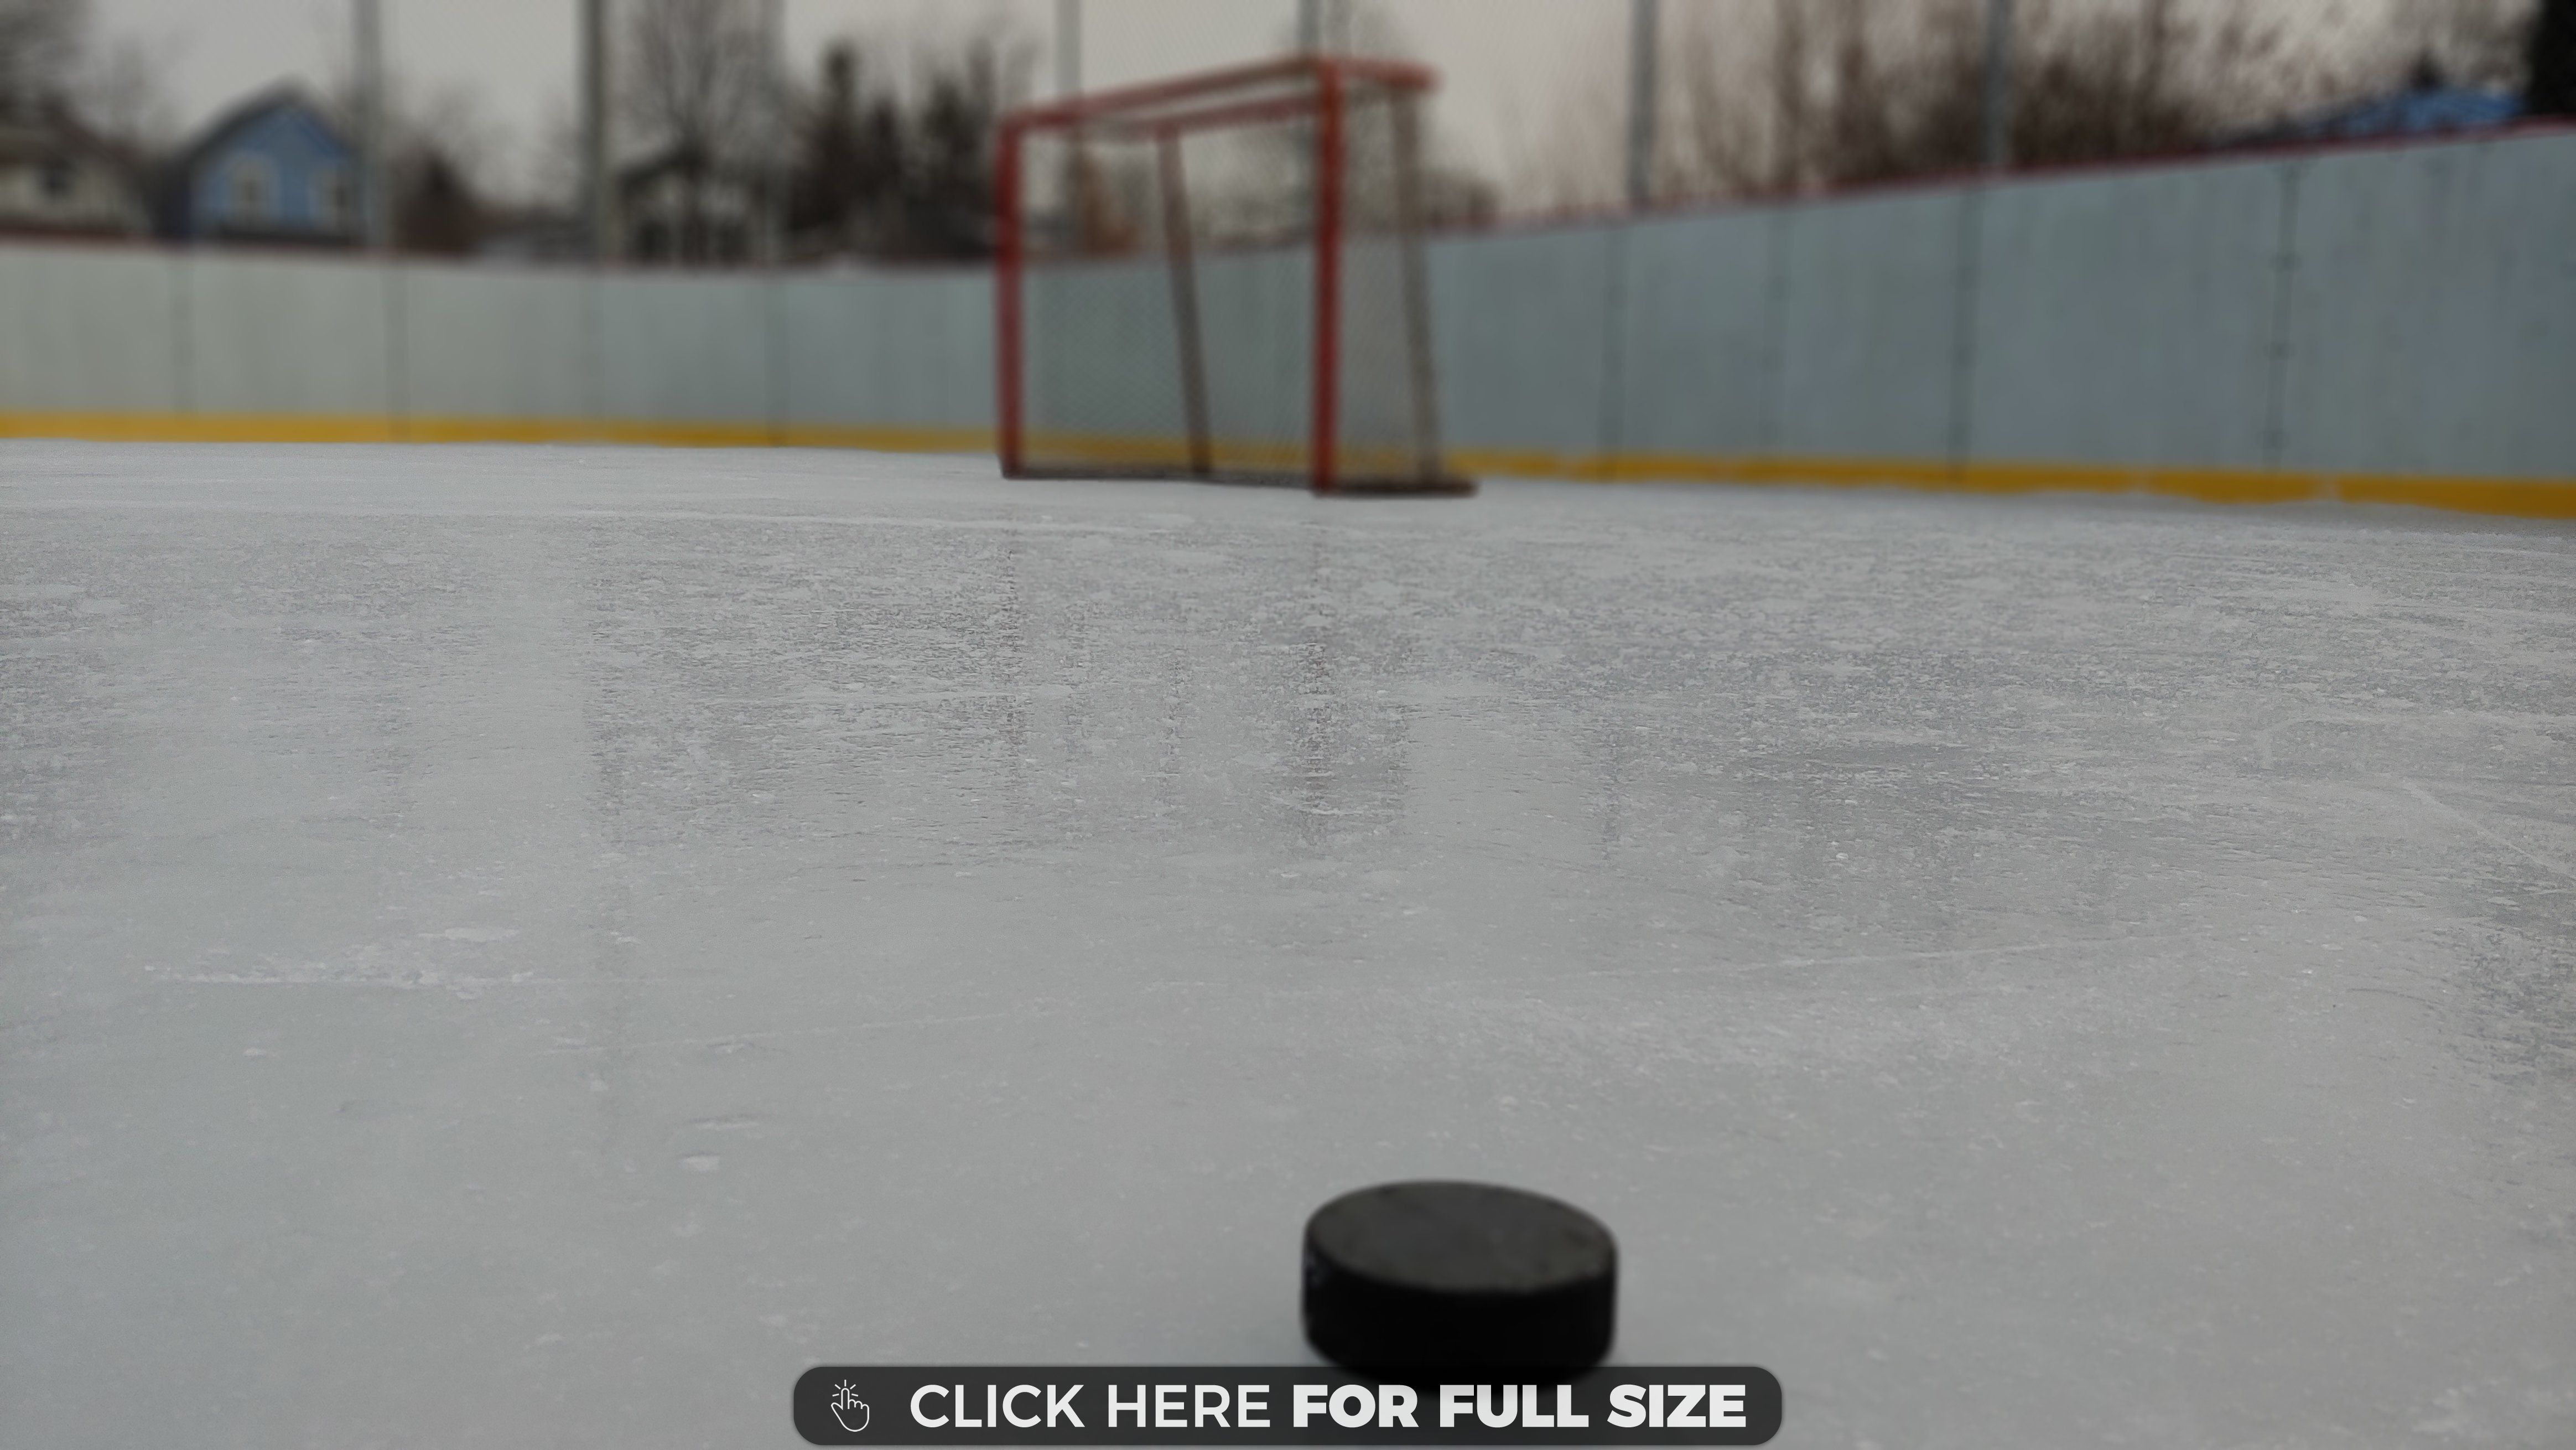 Hockey On The Outdoor Rink 4k Wallpaper Outdoor Rink Outdoor Wallpaper